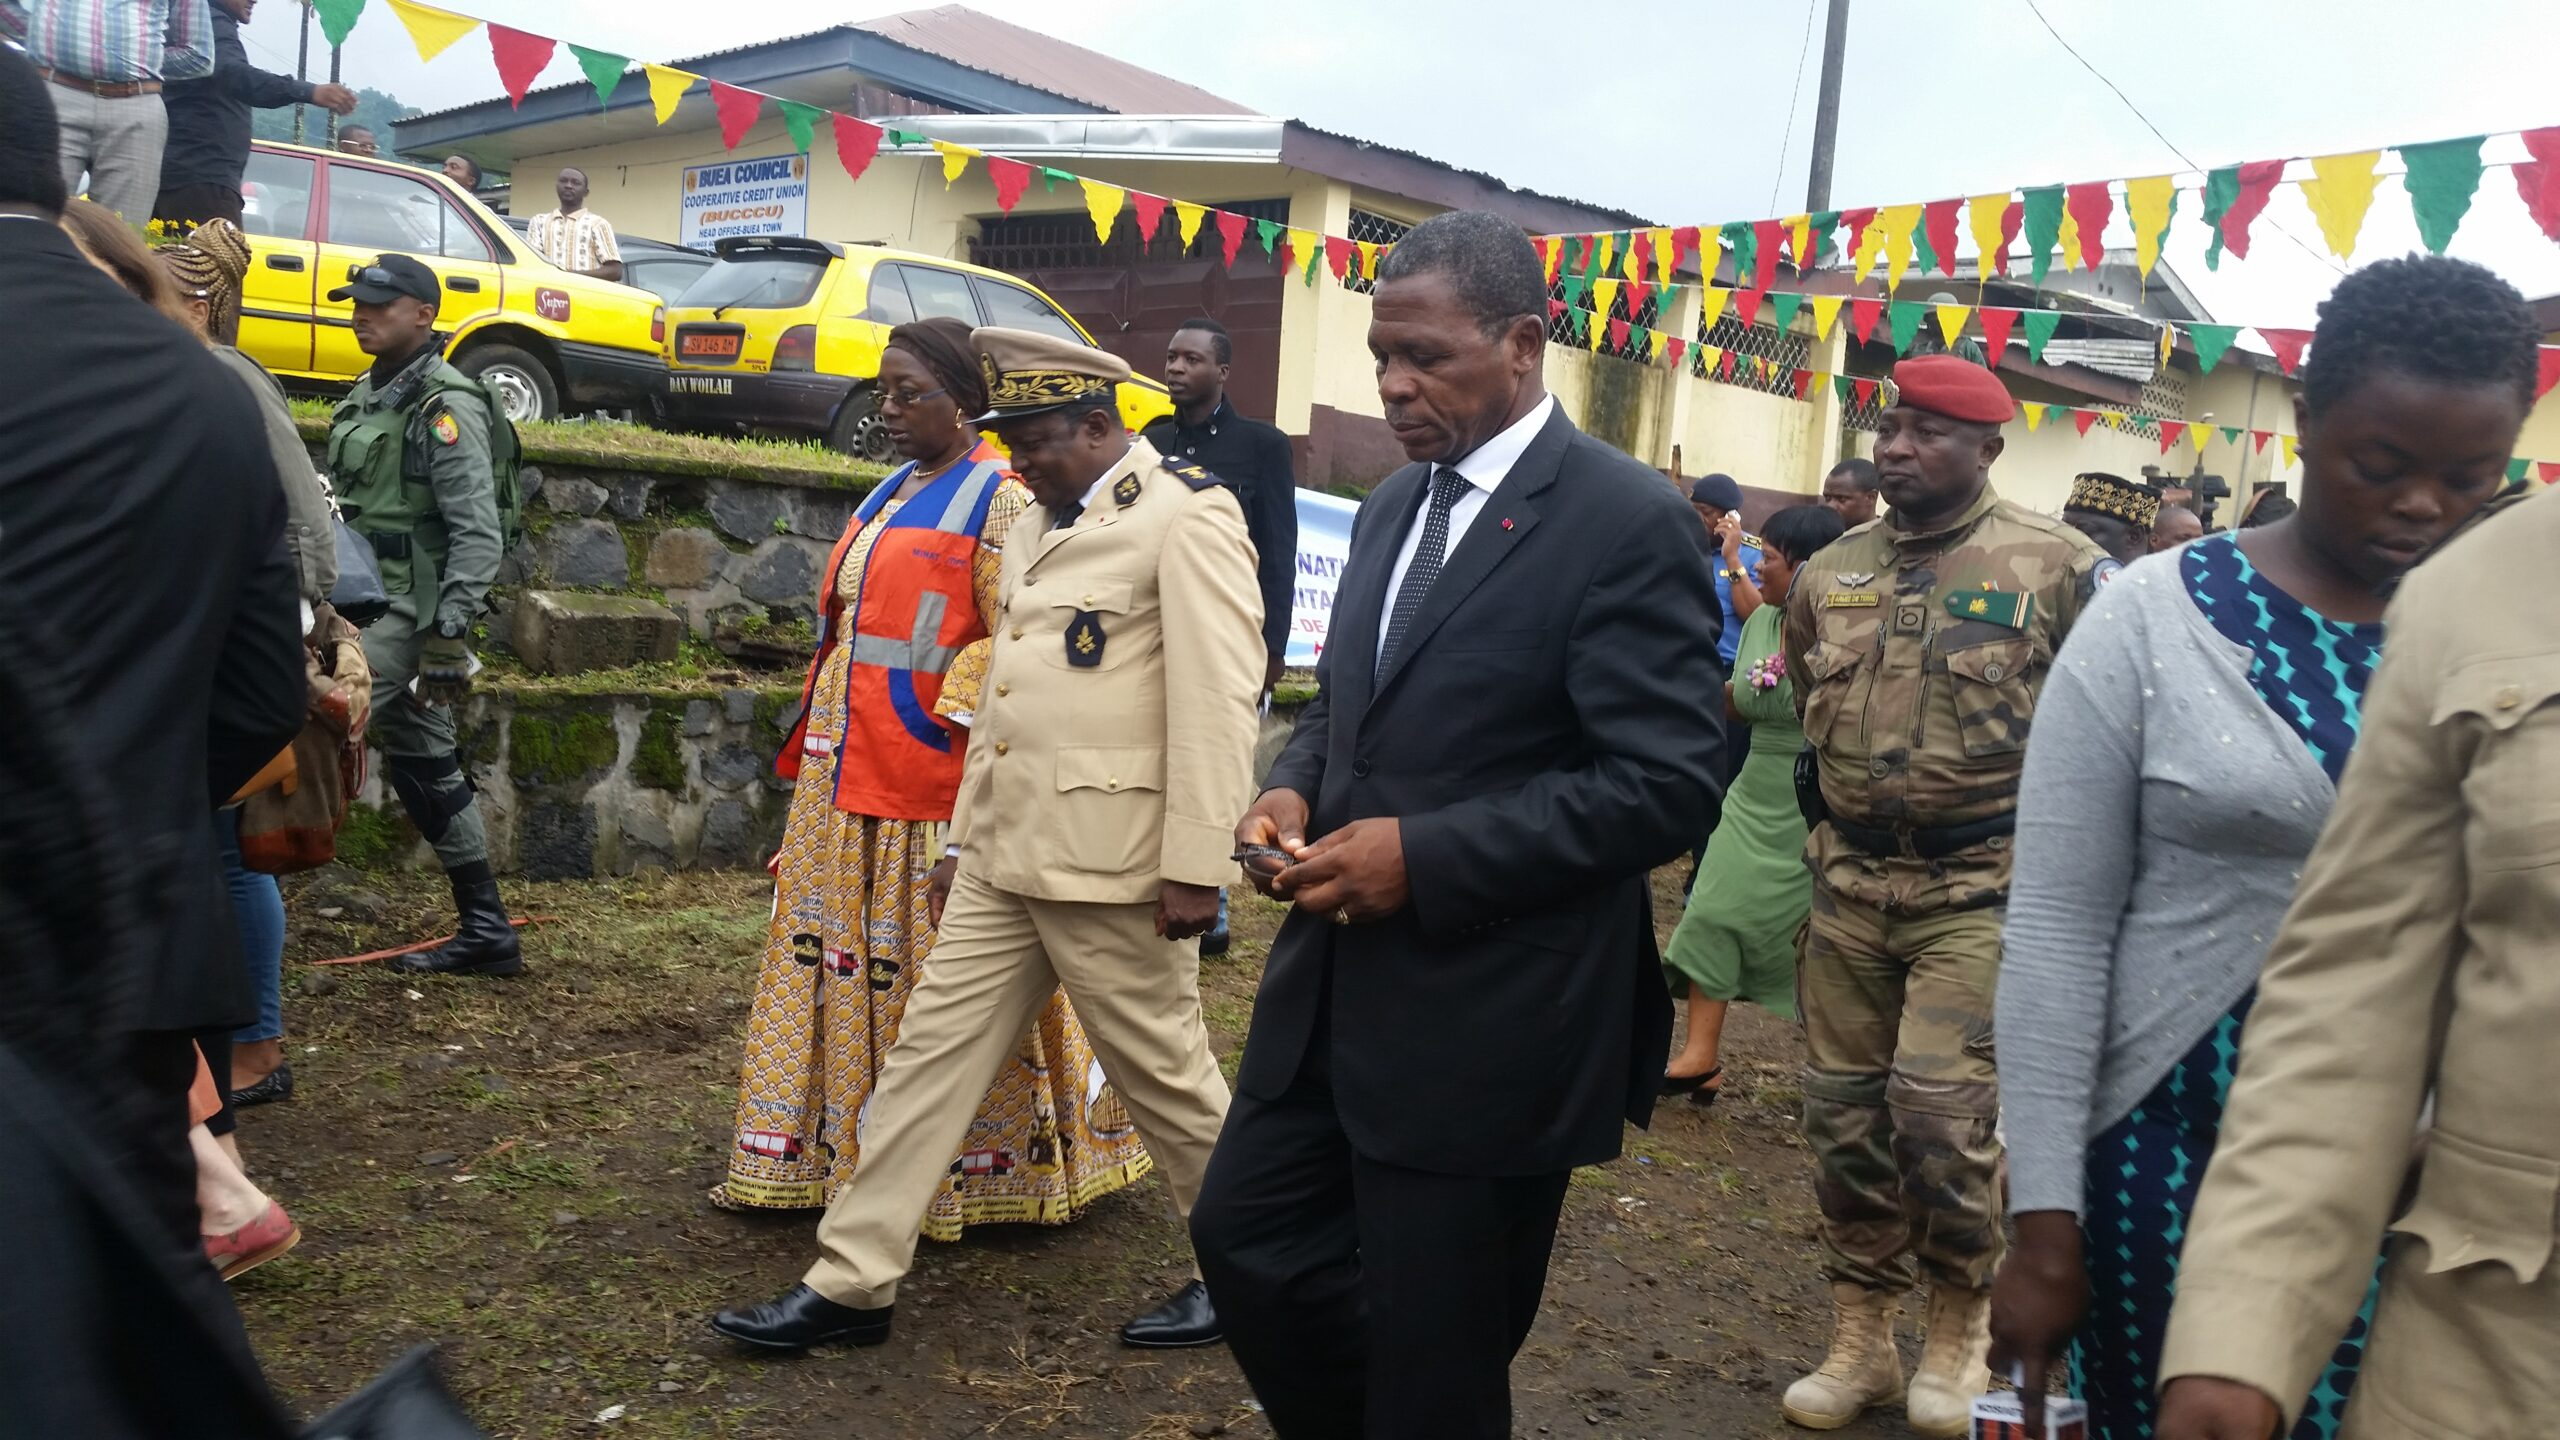 Minister Paul Atanga Nji during his visit to the Coordination center for humanitarian assistance in Buea